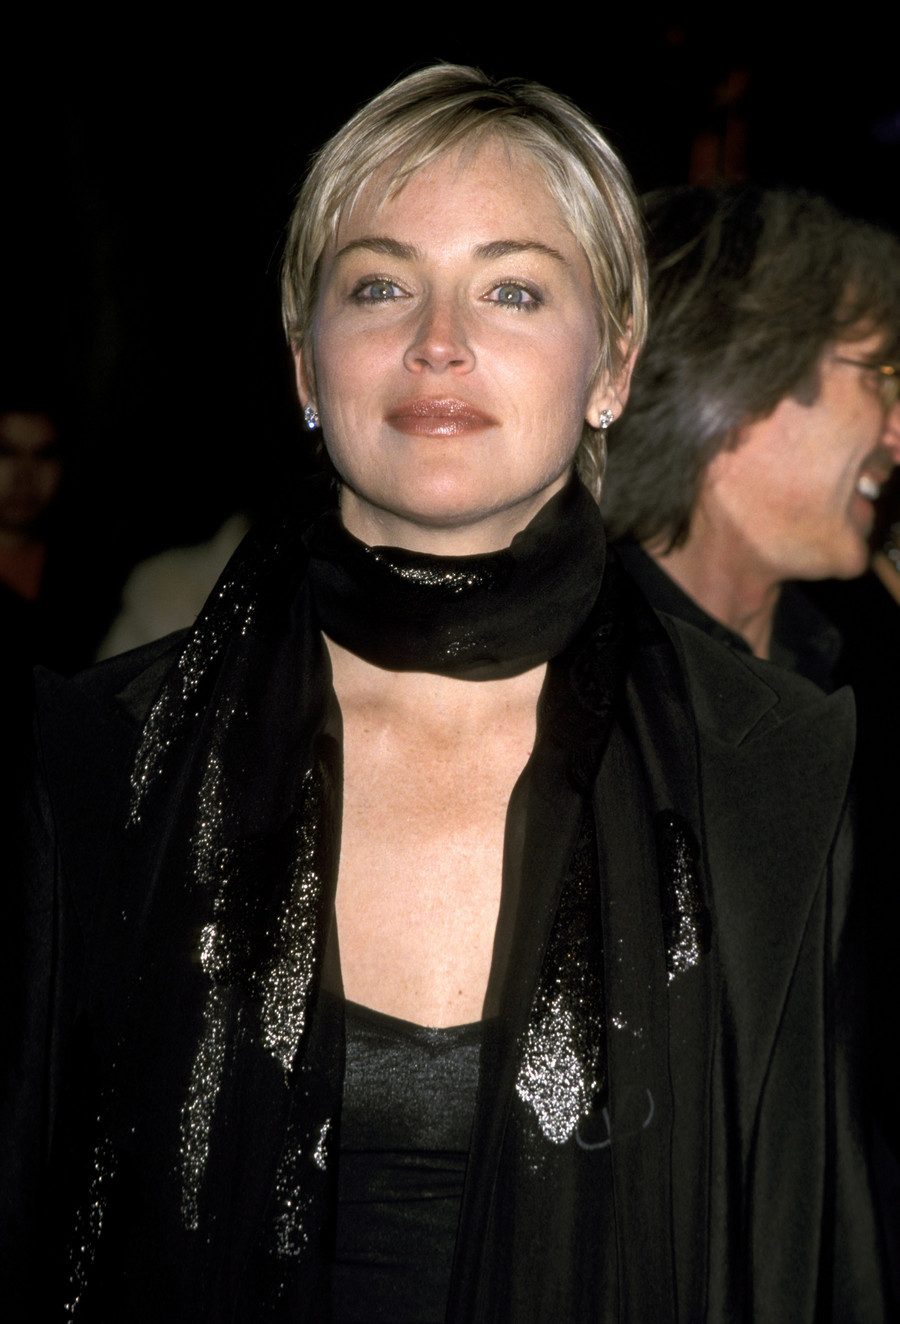 Sharon Stone w latach 90. / Getty Images / Jim Smeal